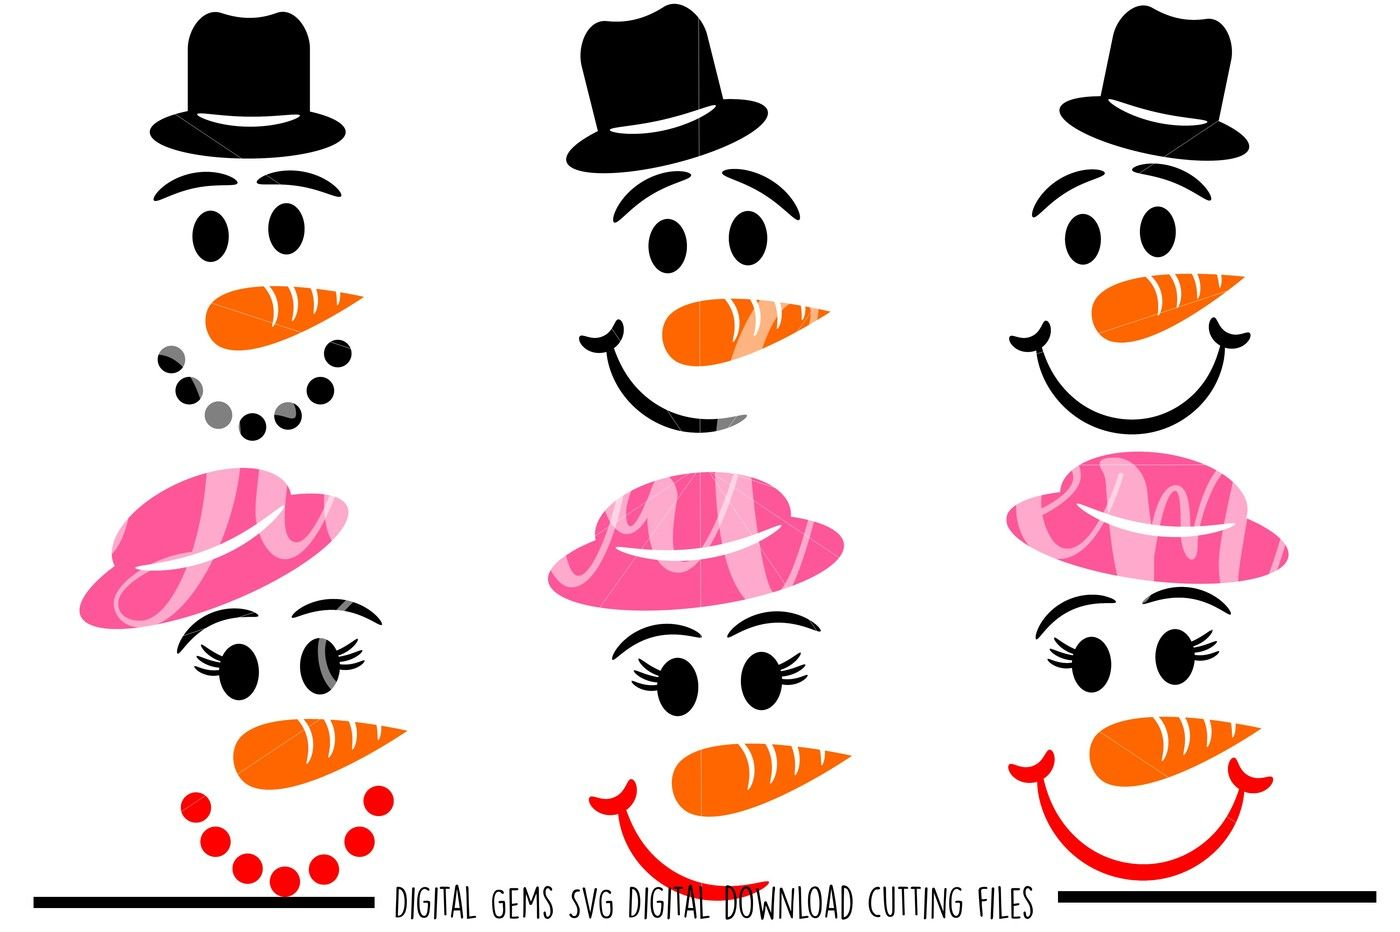 Snowman Faces Svg Dxf Eps Png Files By Digital Gems